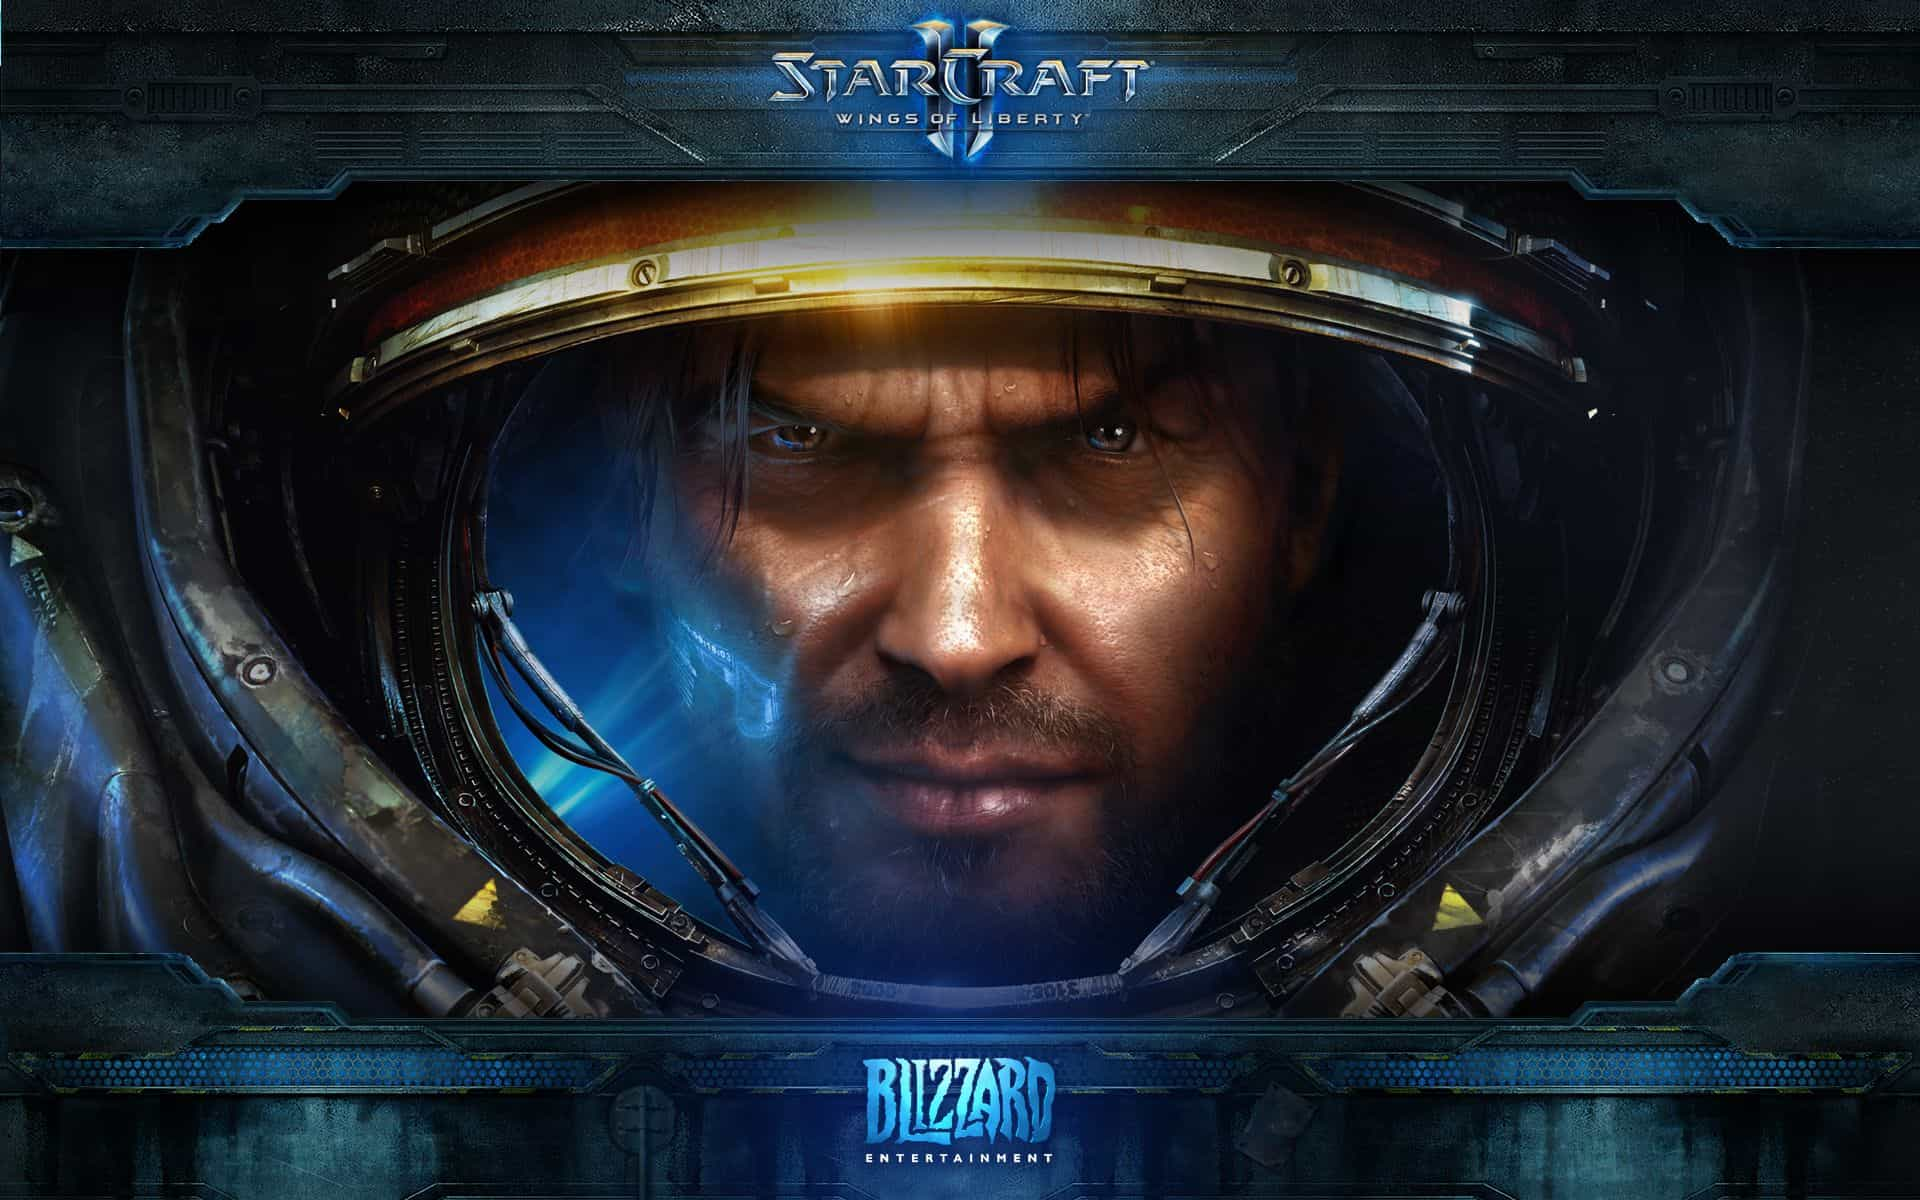 amazon StarCraft II reviews StarCraft II on amazon newest StarCraft II prices of StarCraft II StarCraft II deals best deals on StarCraft II buying a StarCraft II lastest StarCraft II what is a StarCraft II StarCraft II at amazon where to buy StarCraft II where can i you get a StarCraft II online purchase StarCraft II sale off discount cheapest StarCraft II StarCraft II for sale StarCraft II downloads StarCraft II publisher StarCraft II programs StarCraft II products StarCraft II license StarCraft II applications